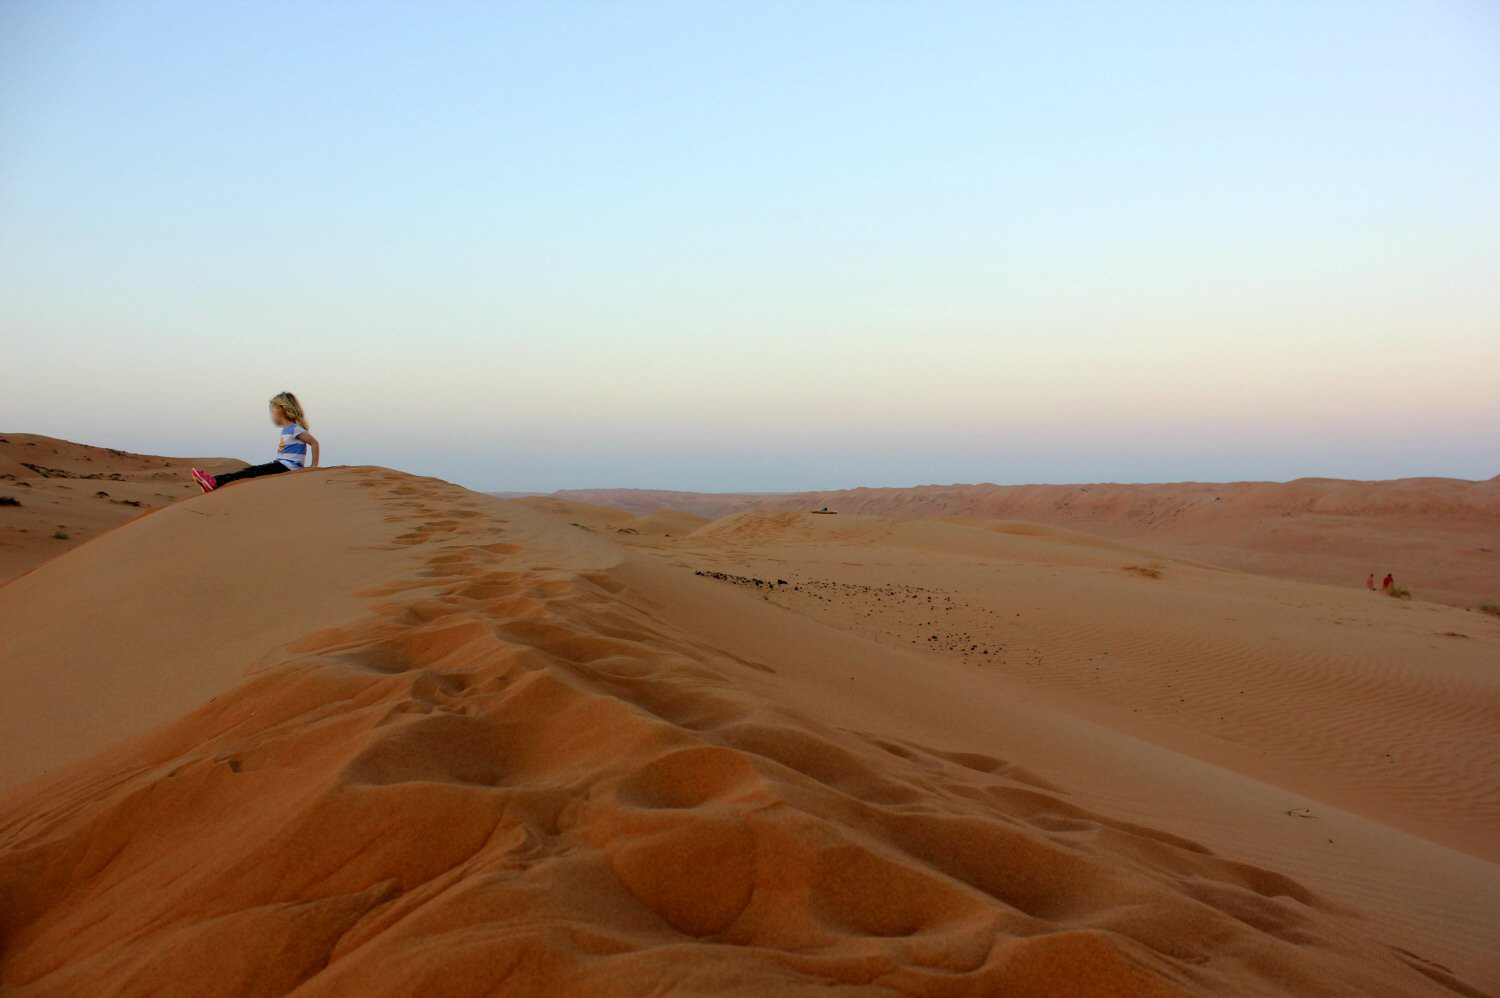 A shot of my daughter sitting on the edge of a sand dune in Oman, alone in the landscape with the start of sunset behind her - our stay in Wahiba Sands